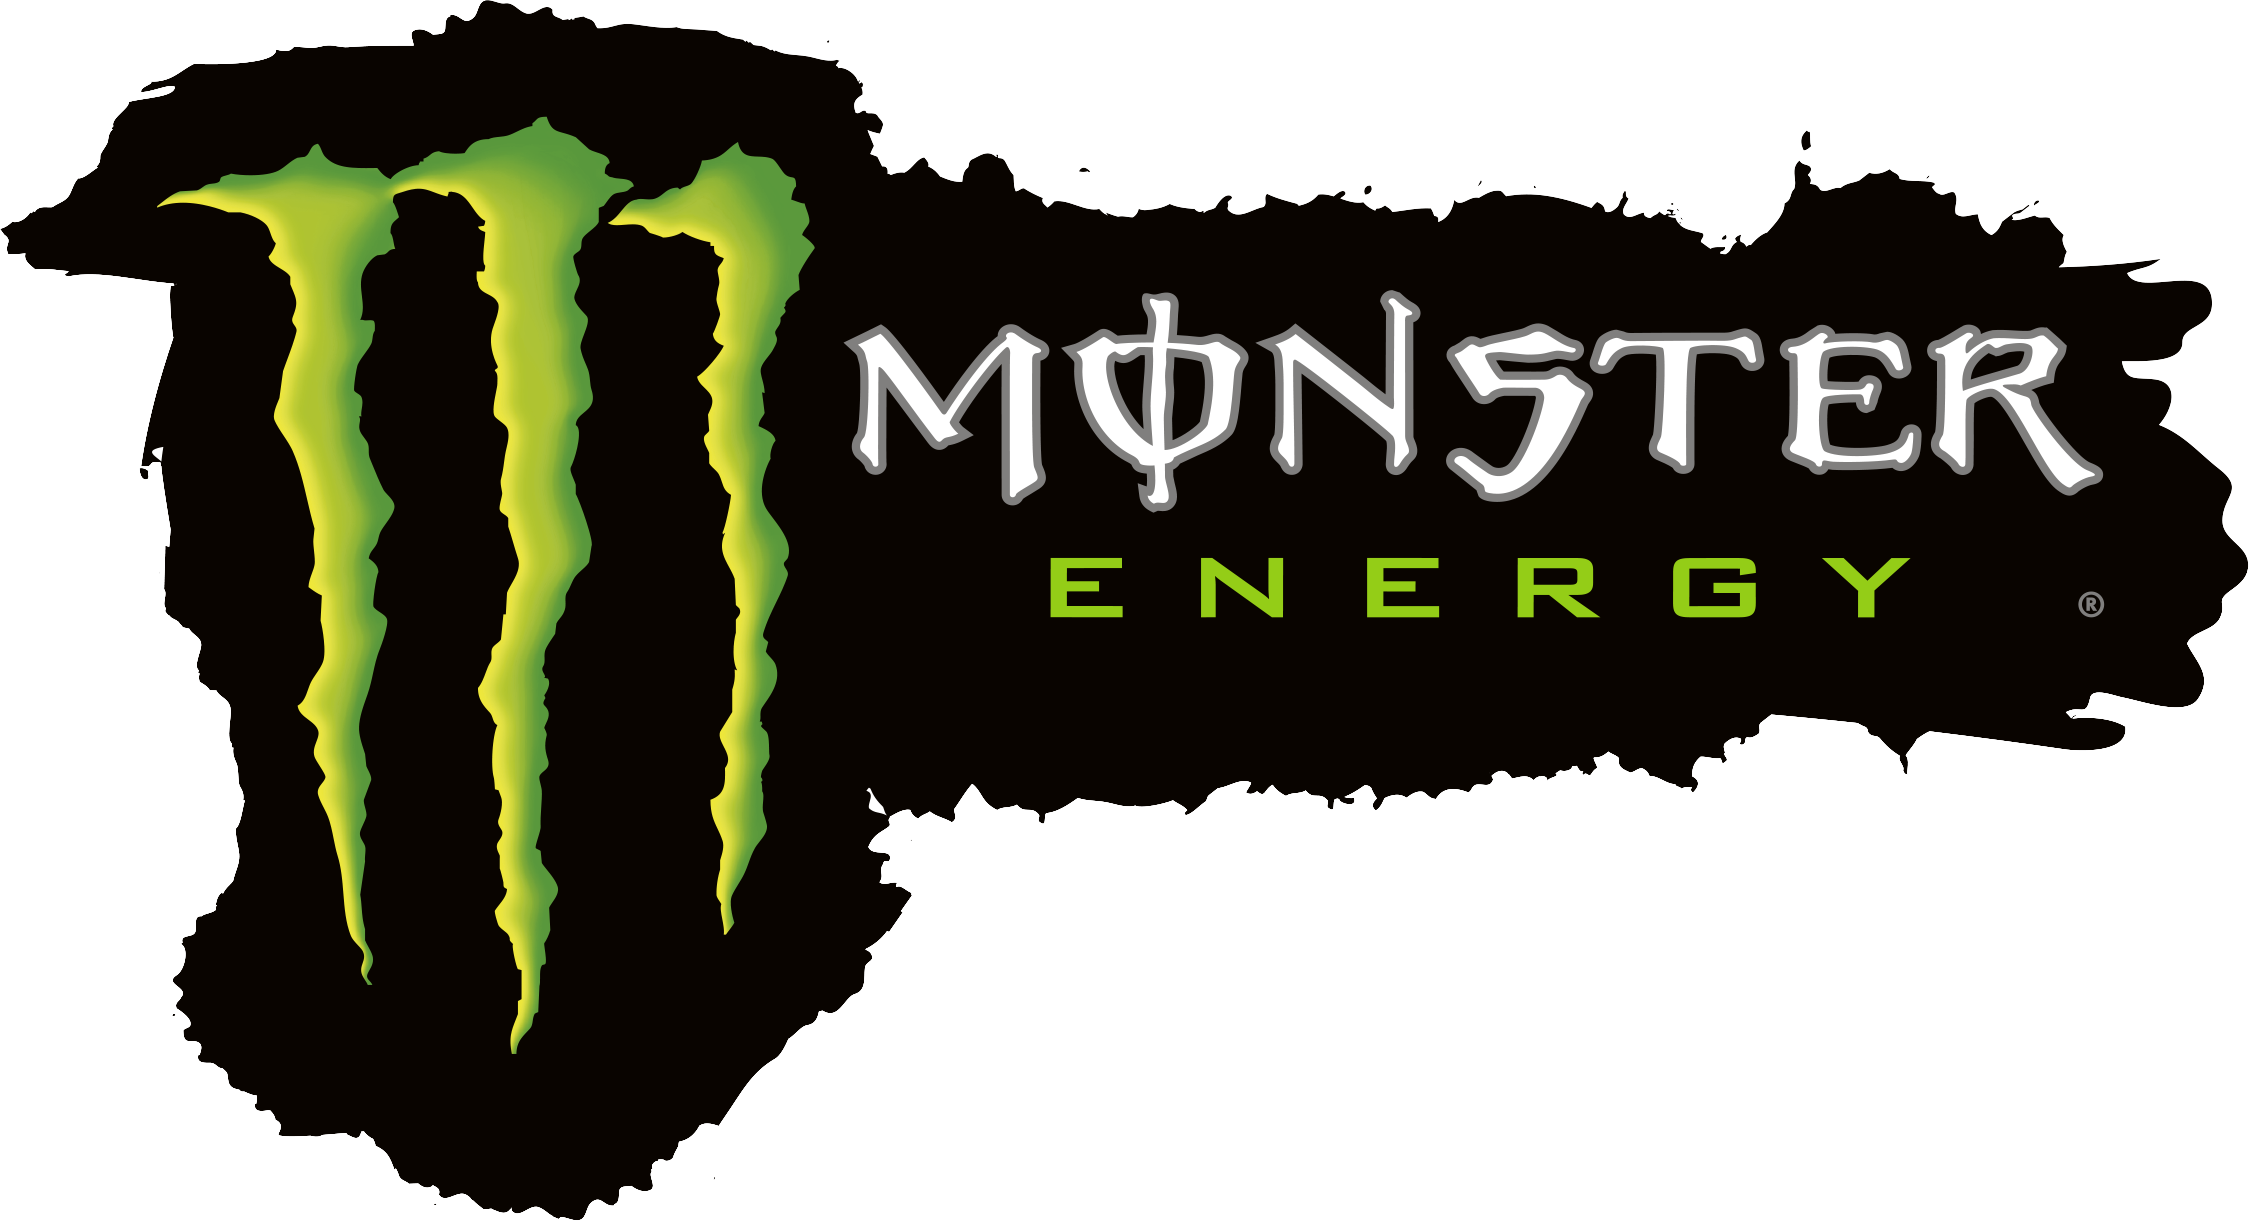 293238_monster-energy-logo-png.png